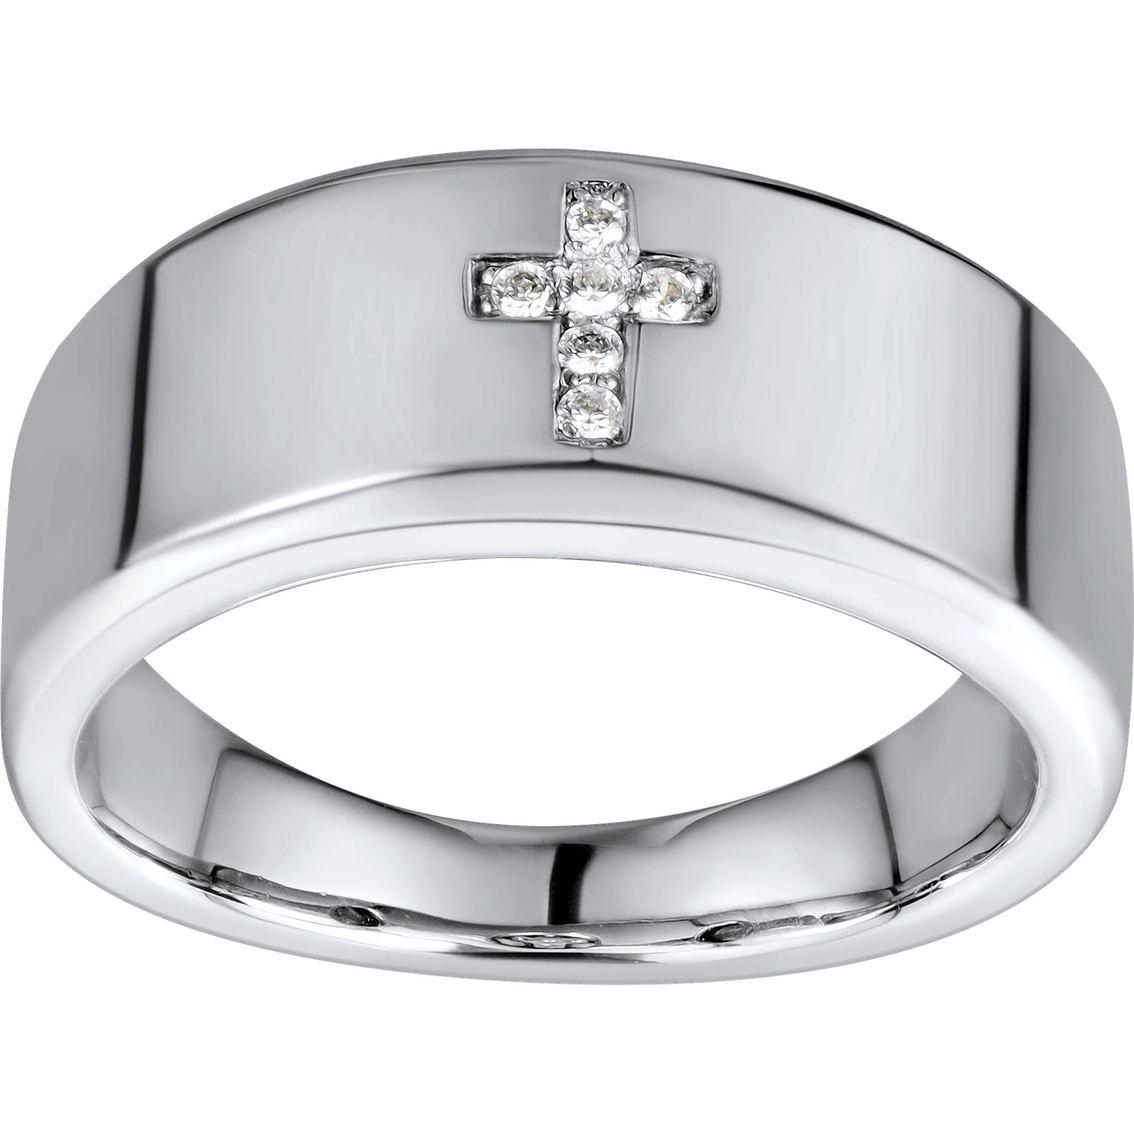 10k white gold accent cross ring size 10 5